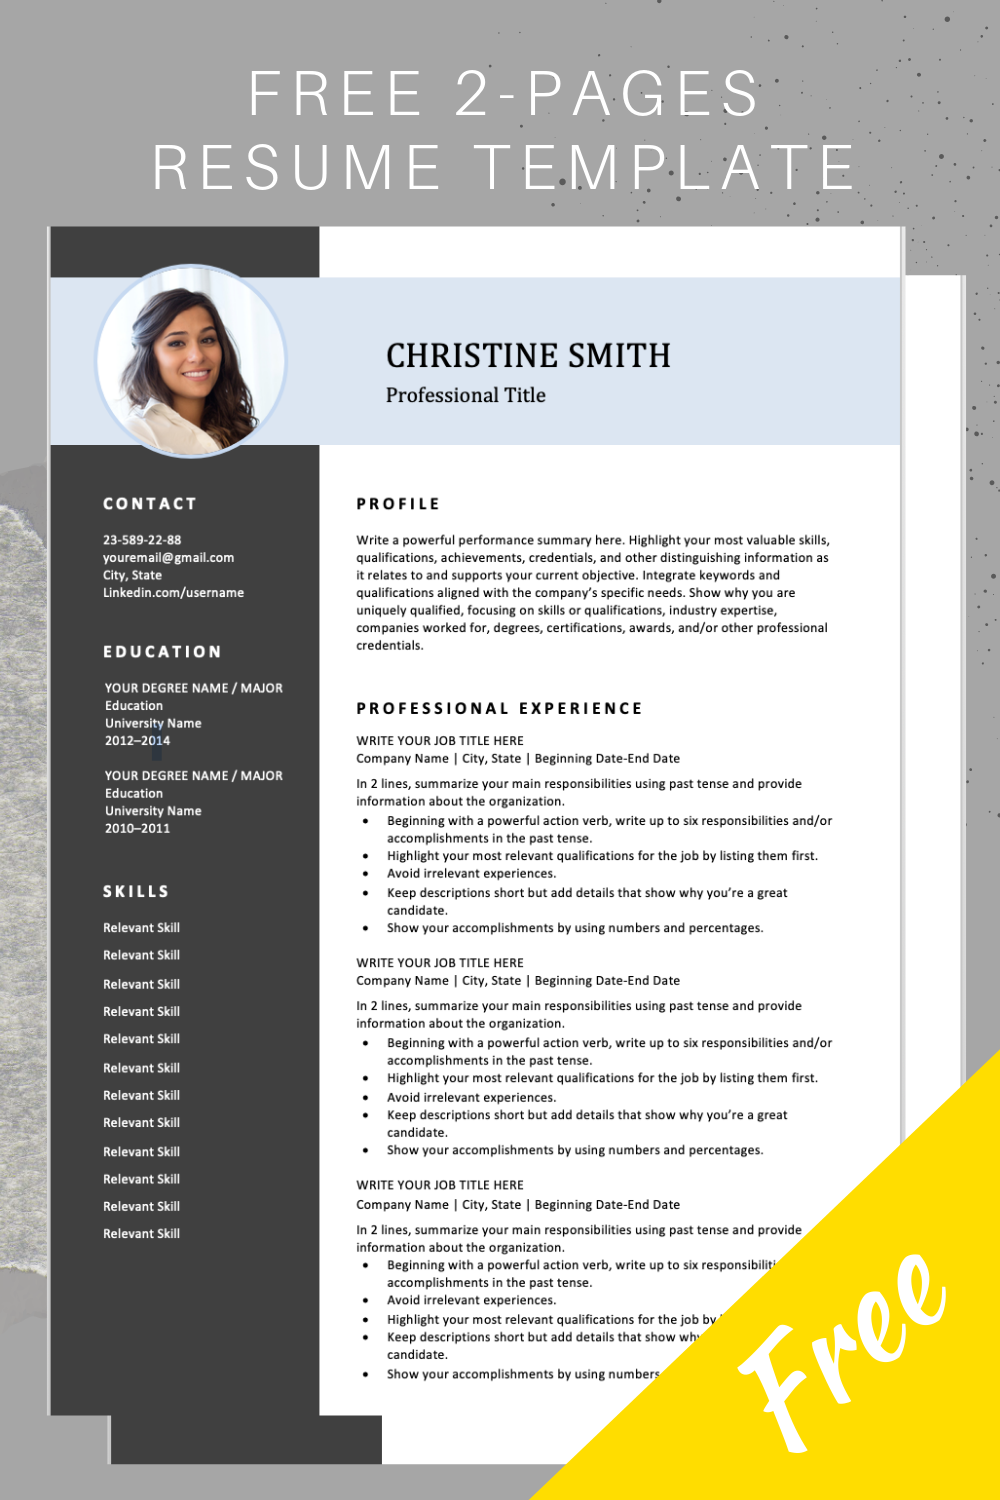 download this professional resume template  it includes